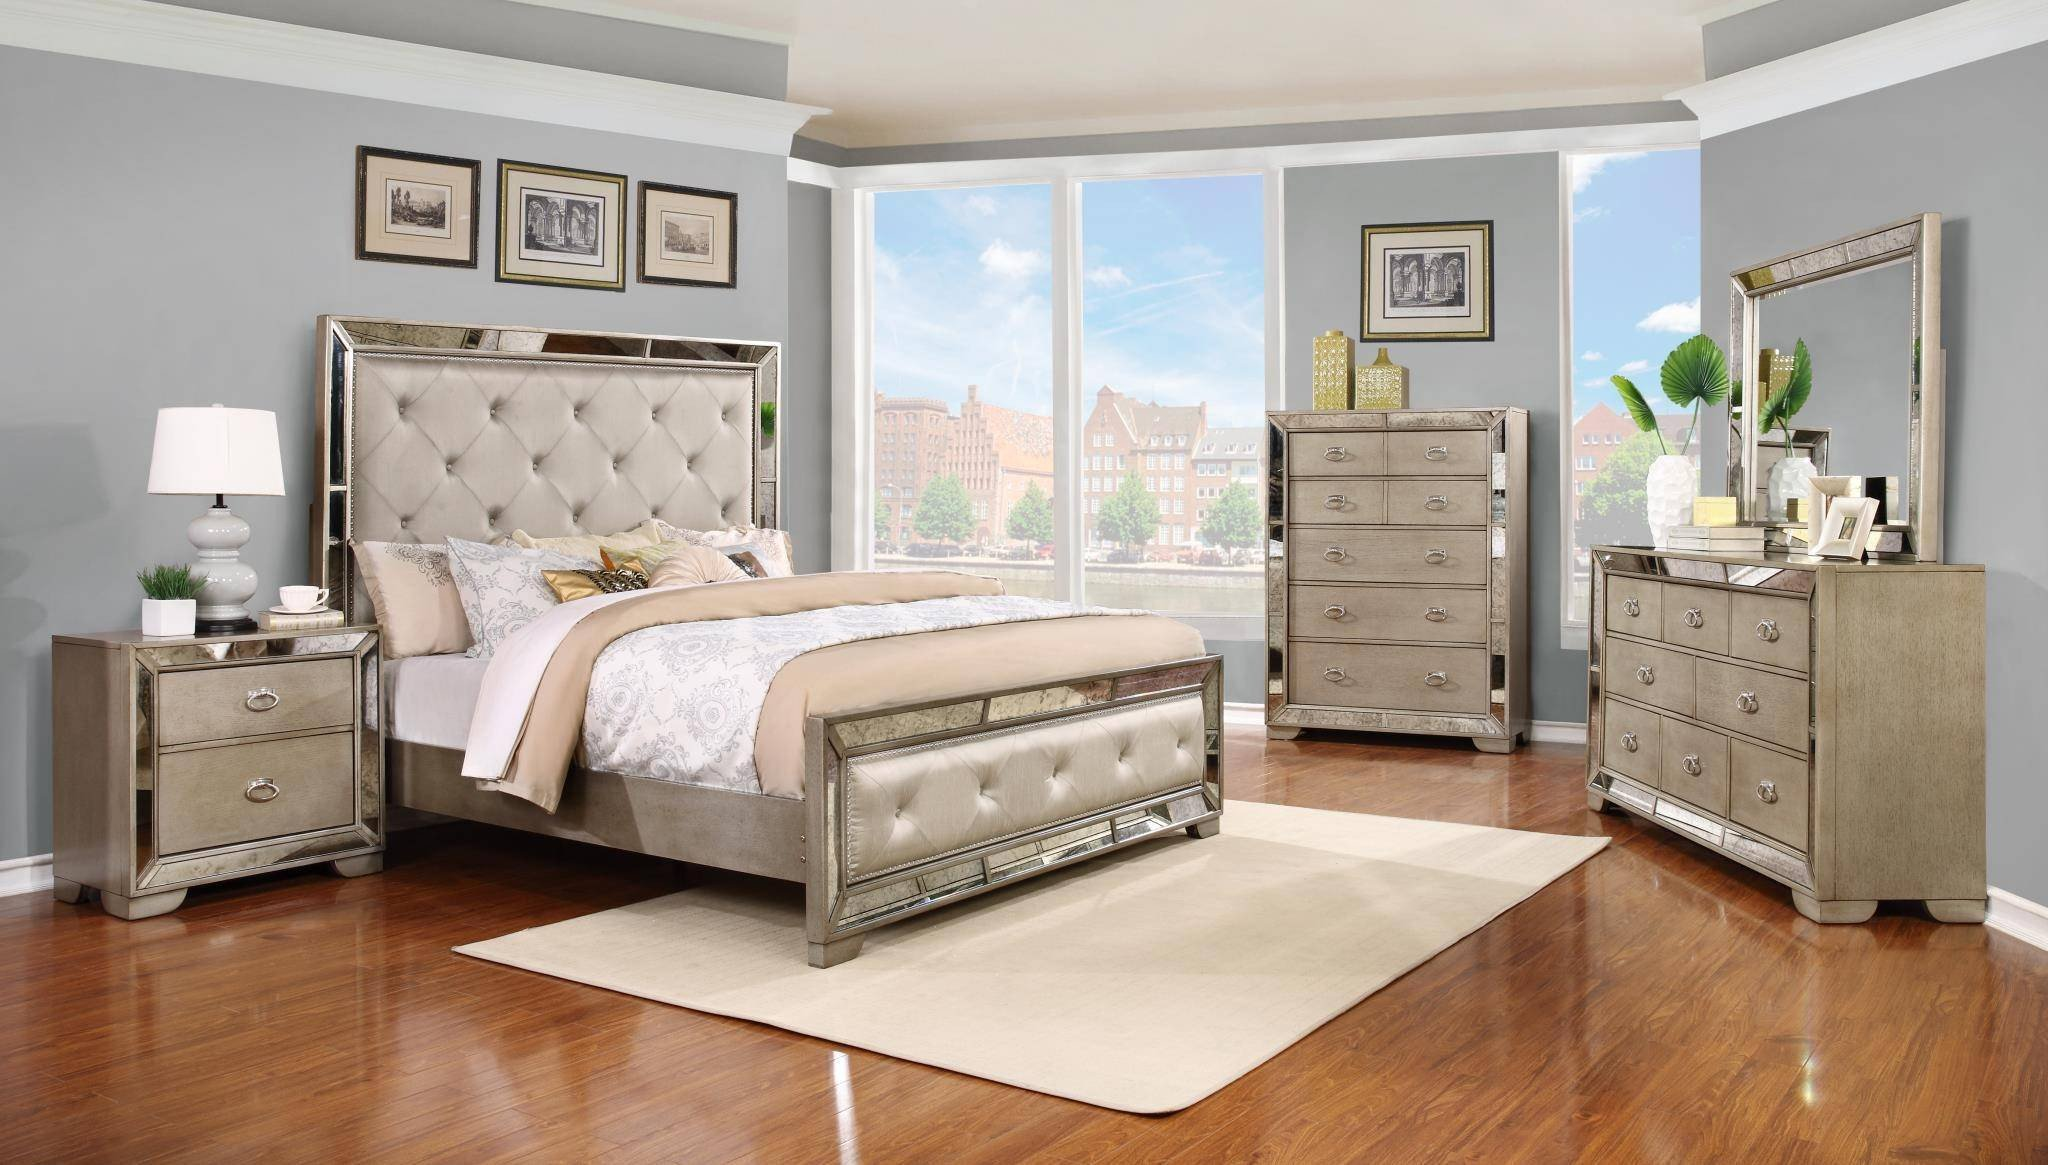 Low Price Bedroom Set Awesome soflex Lilyanna Diamond Tufted Headboard Queen Bedroom Set